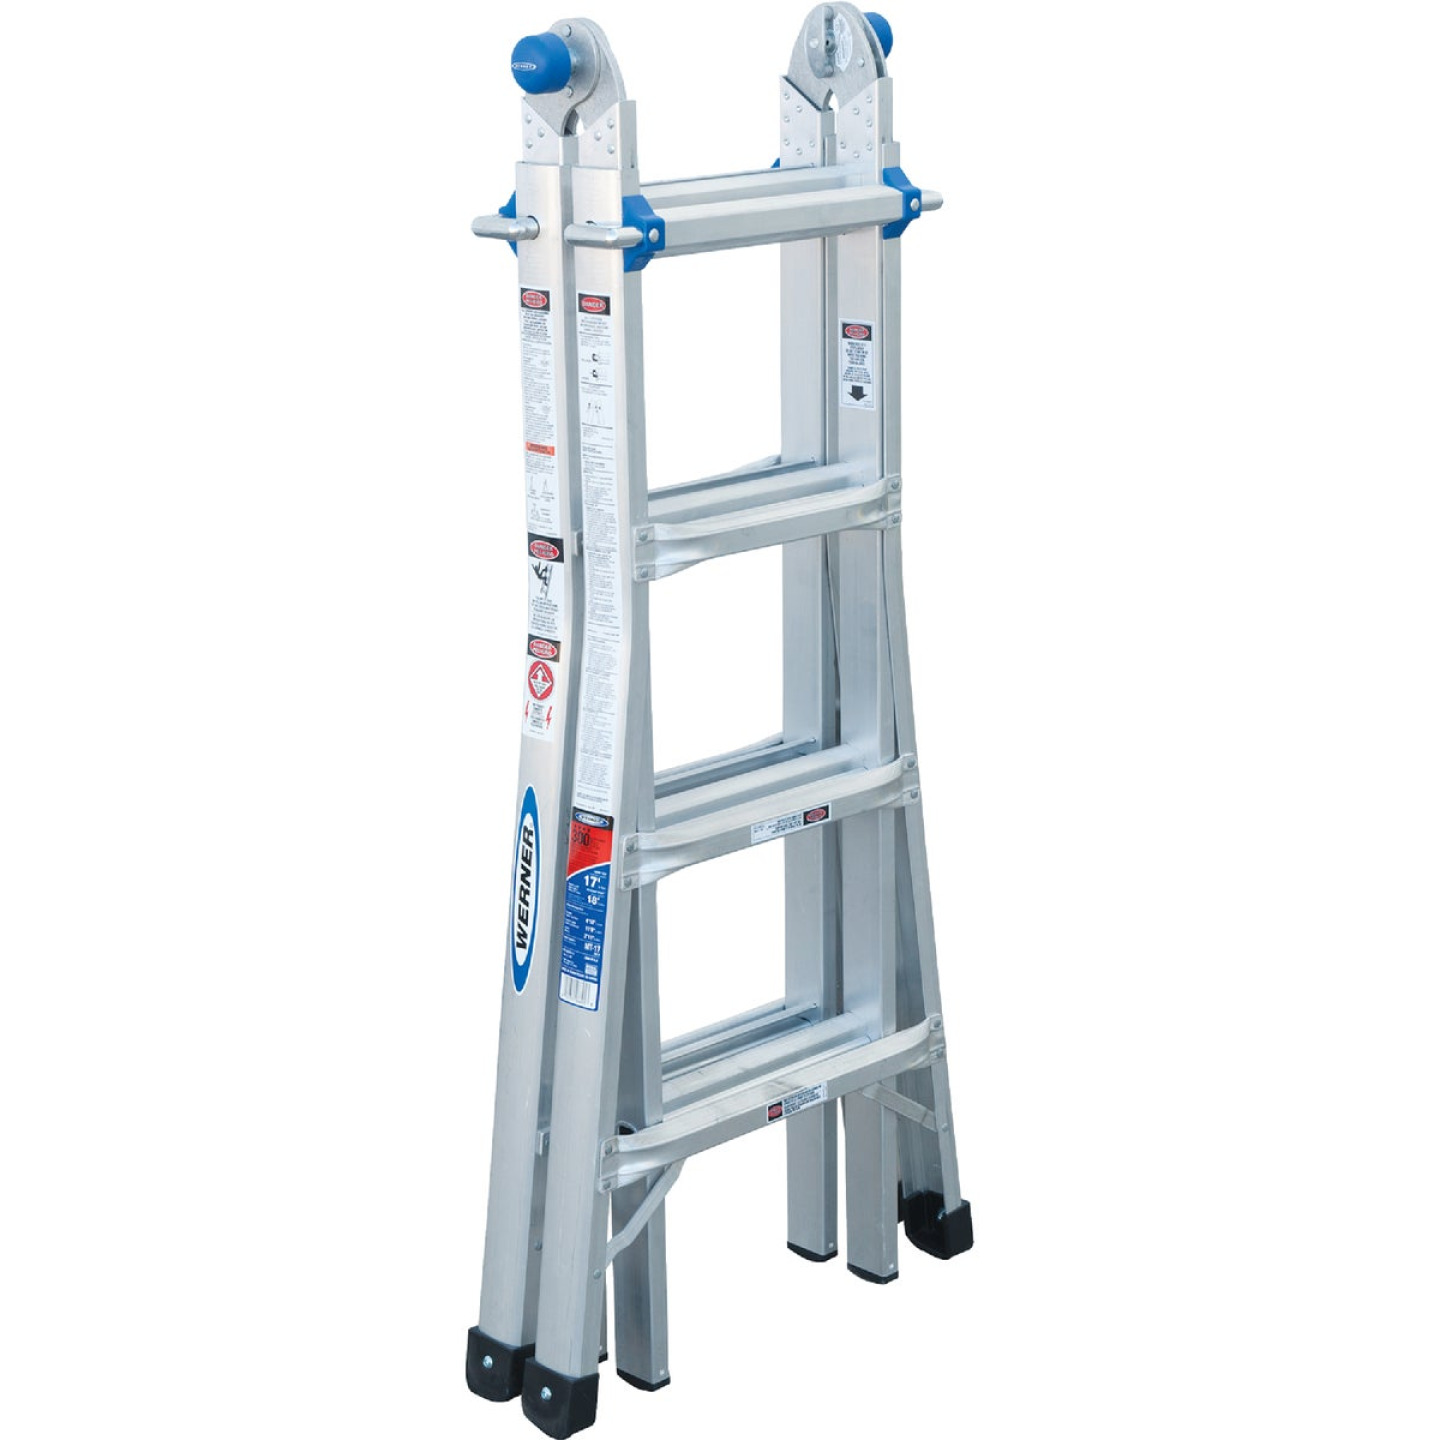 Werner 17 Ft. Aluminum Multi-Position Telescoping Ladder with 300 Lb. Load Capacity Type IA Ladder Rating Image 7